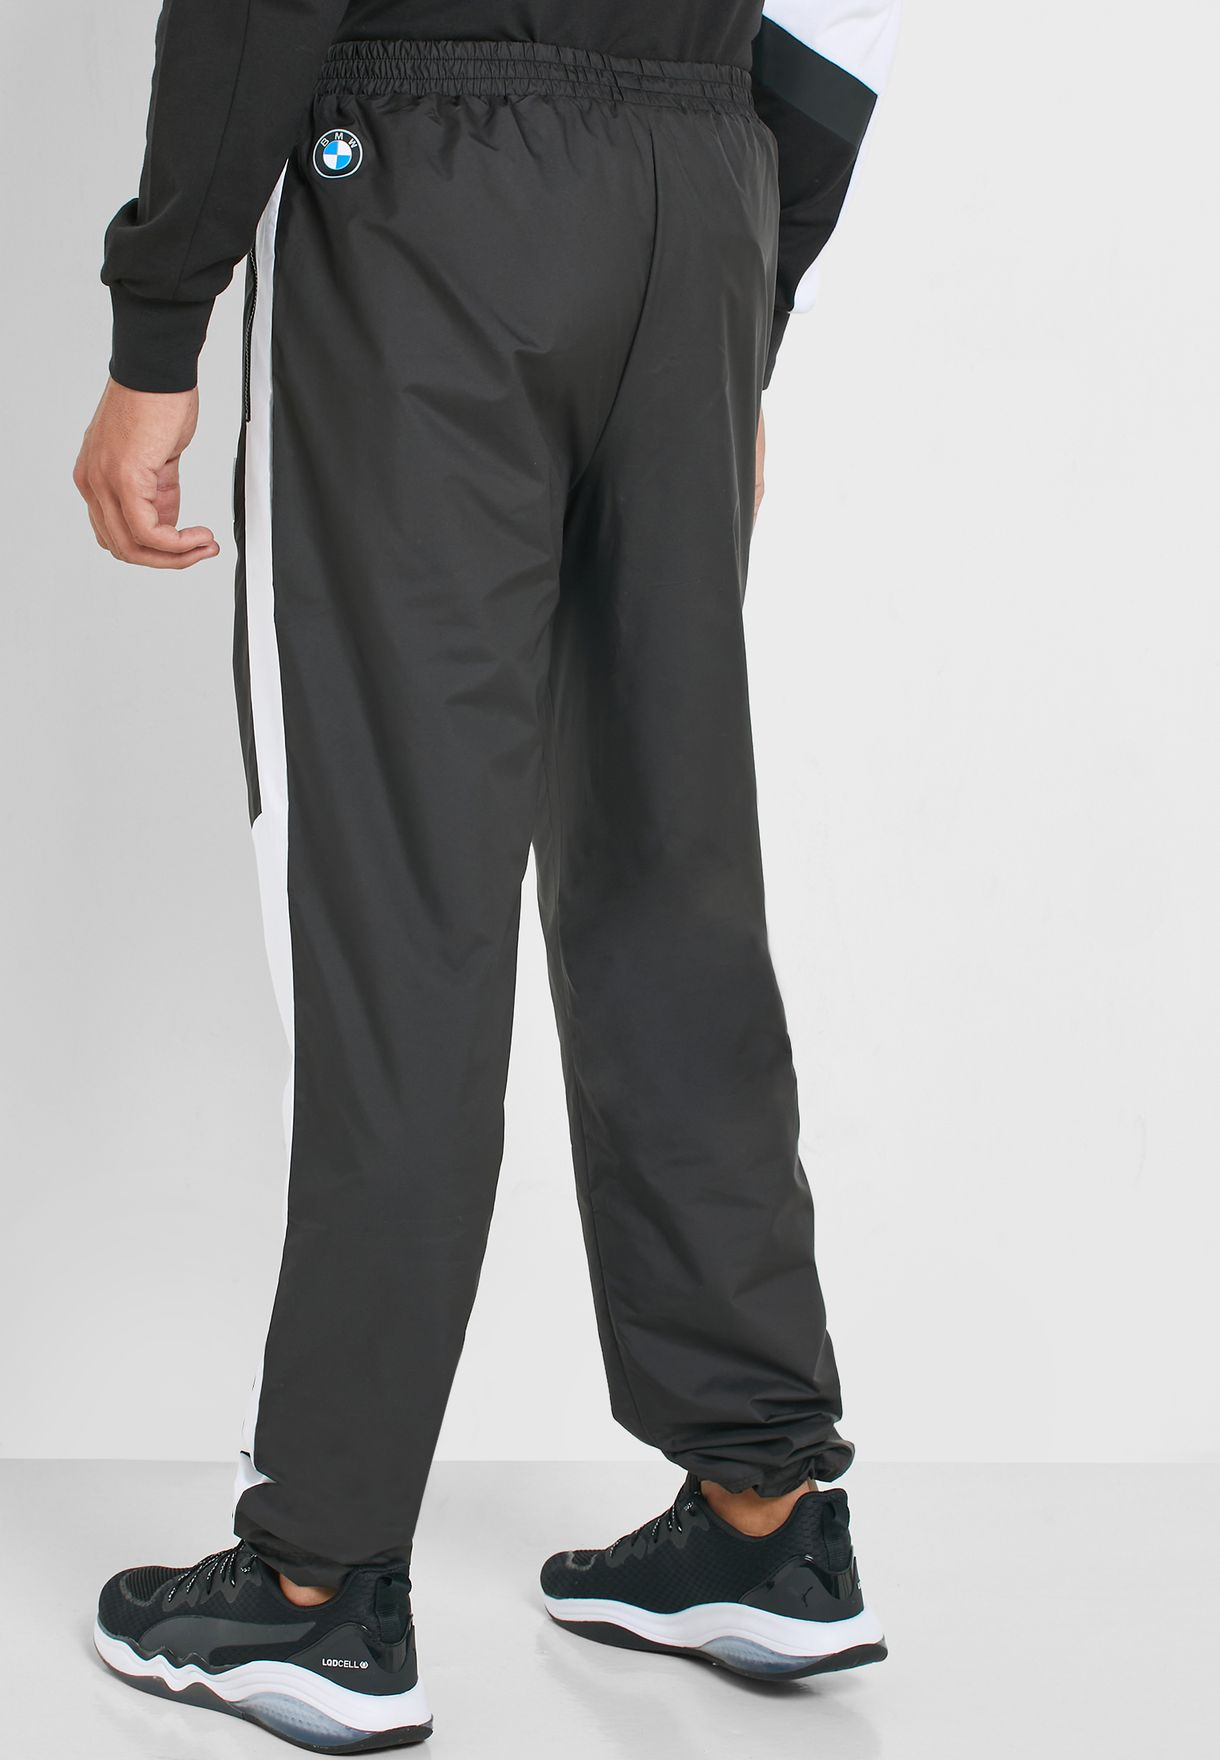 BMW MMS Street Sweatpants